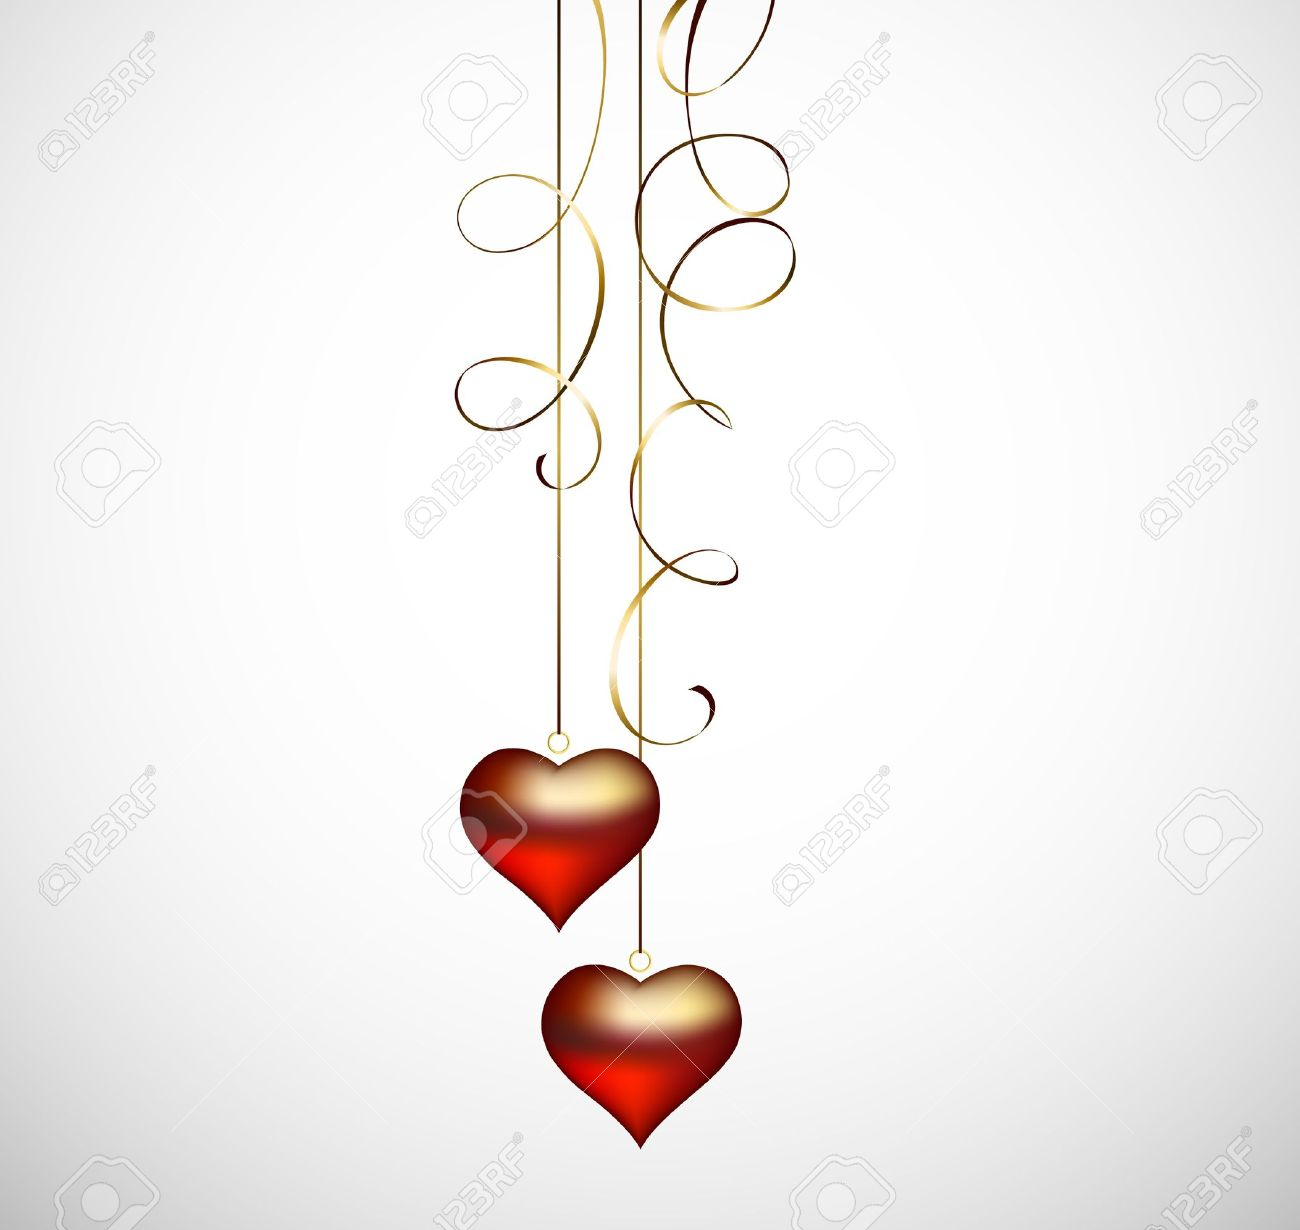 two hanging hearts Stock Vector - 15339182